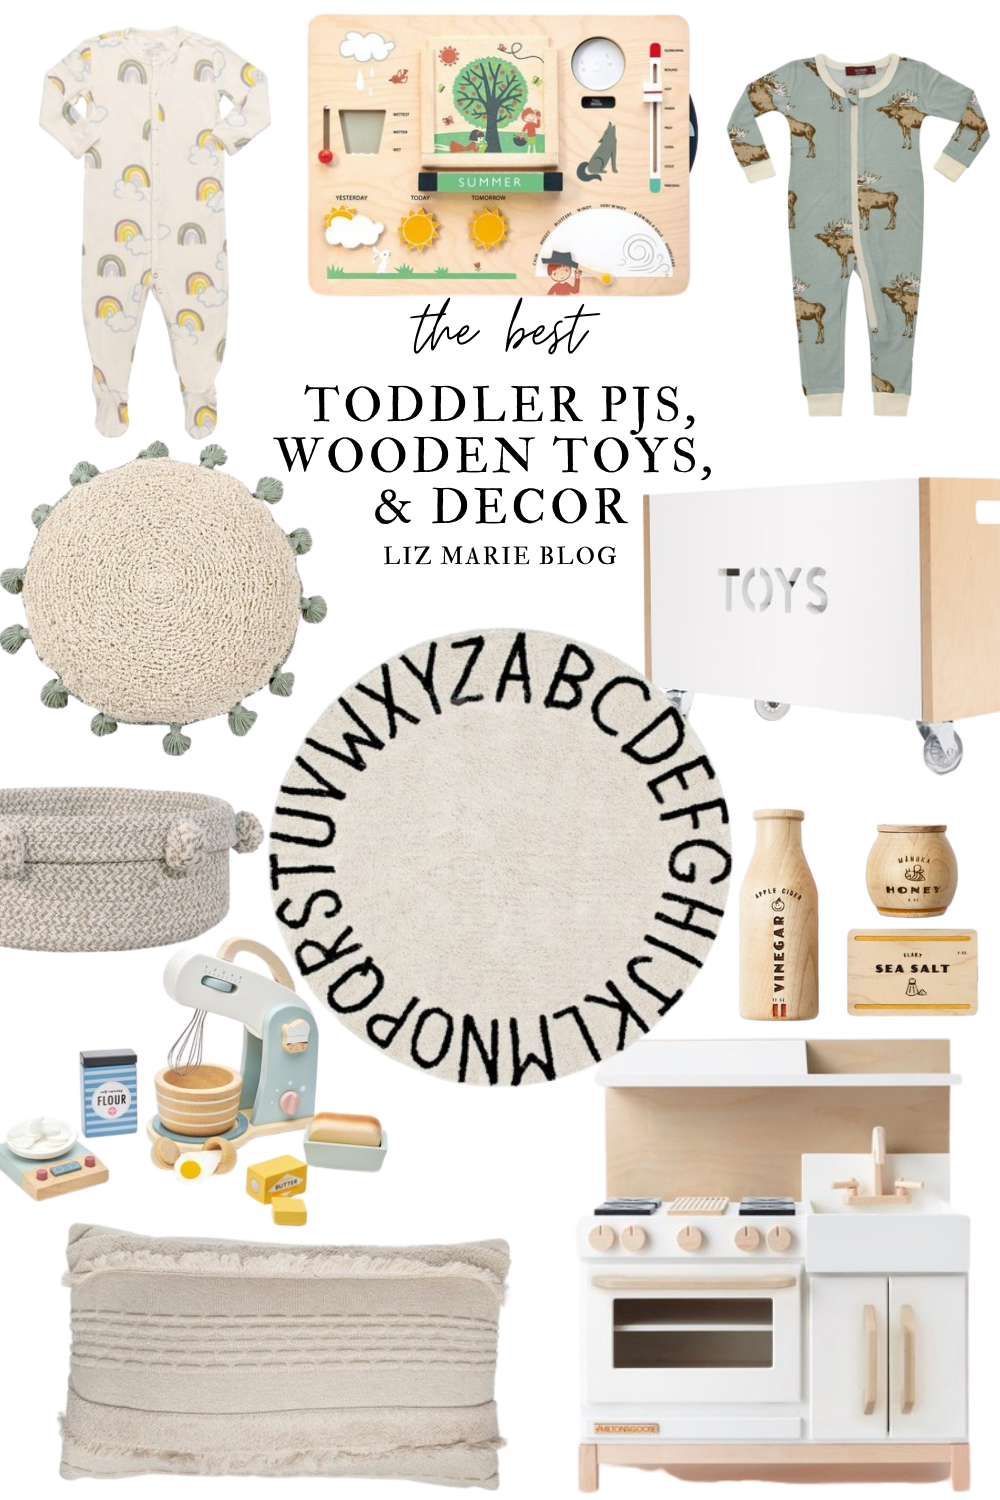 Toddler Favorites from The Tot